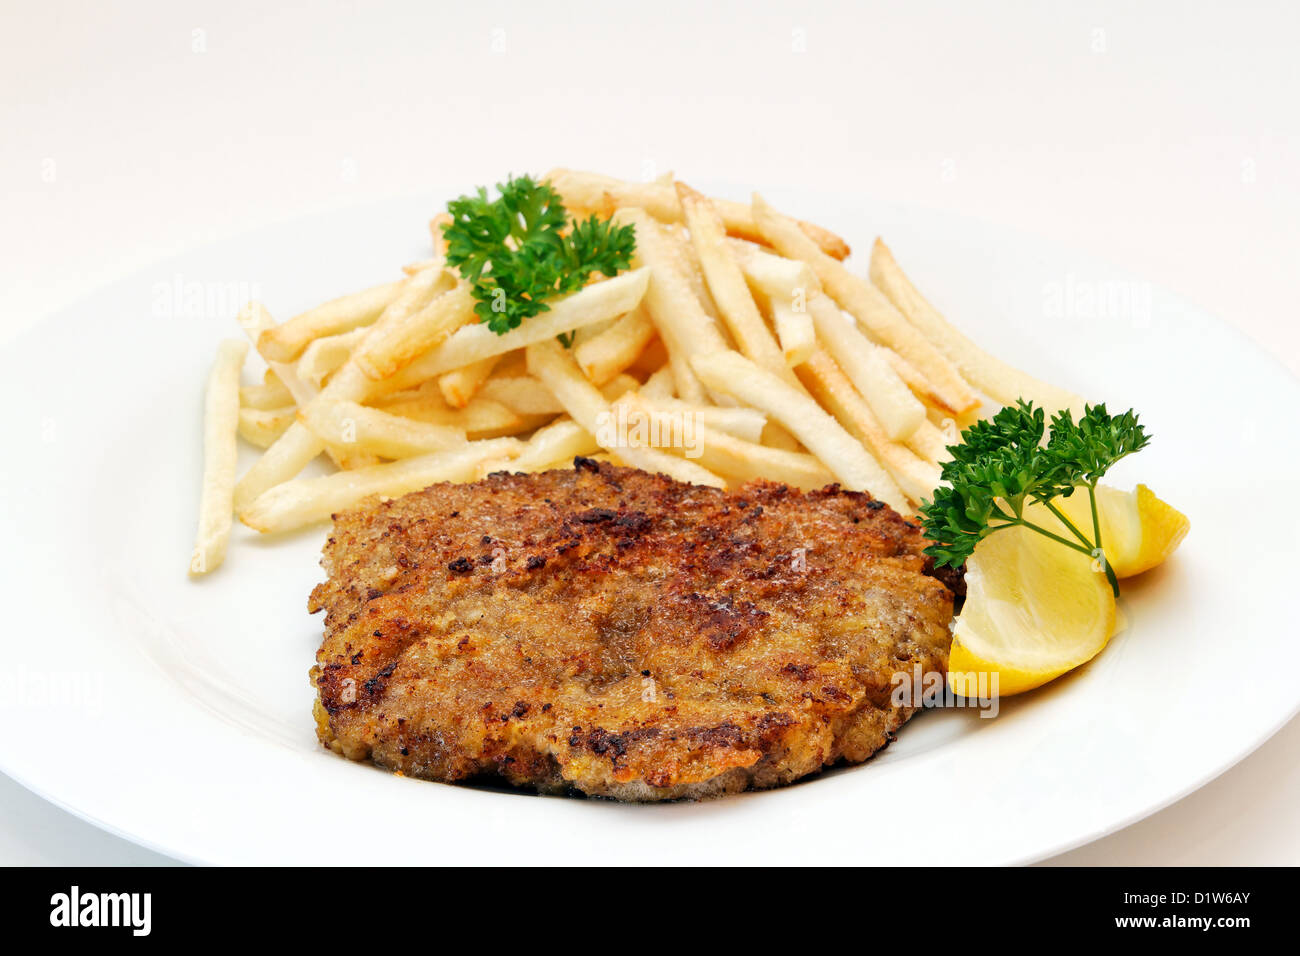 Beef cutlet with french fries - Stock Image